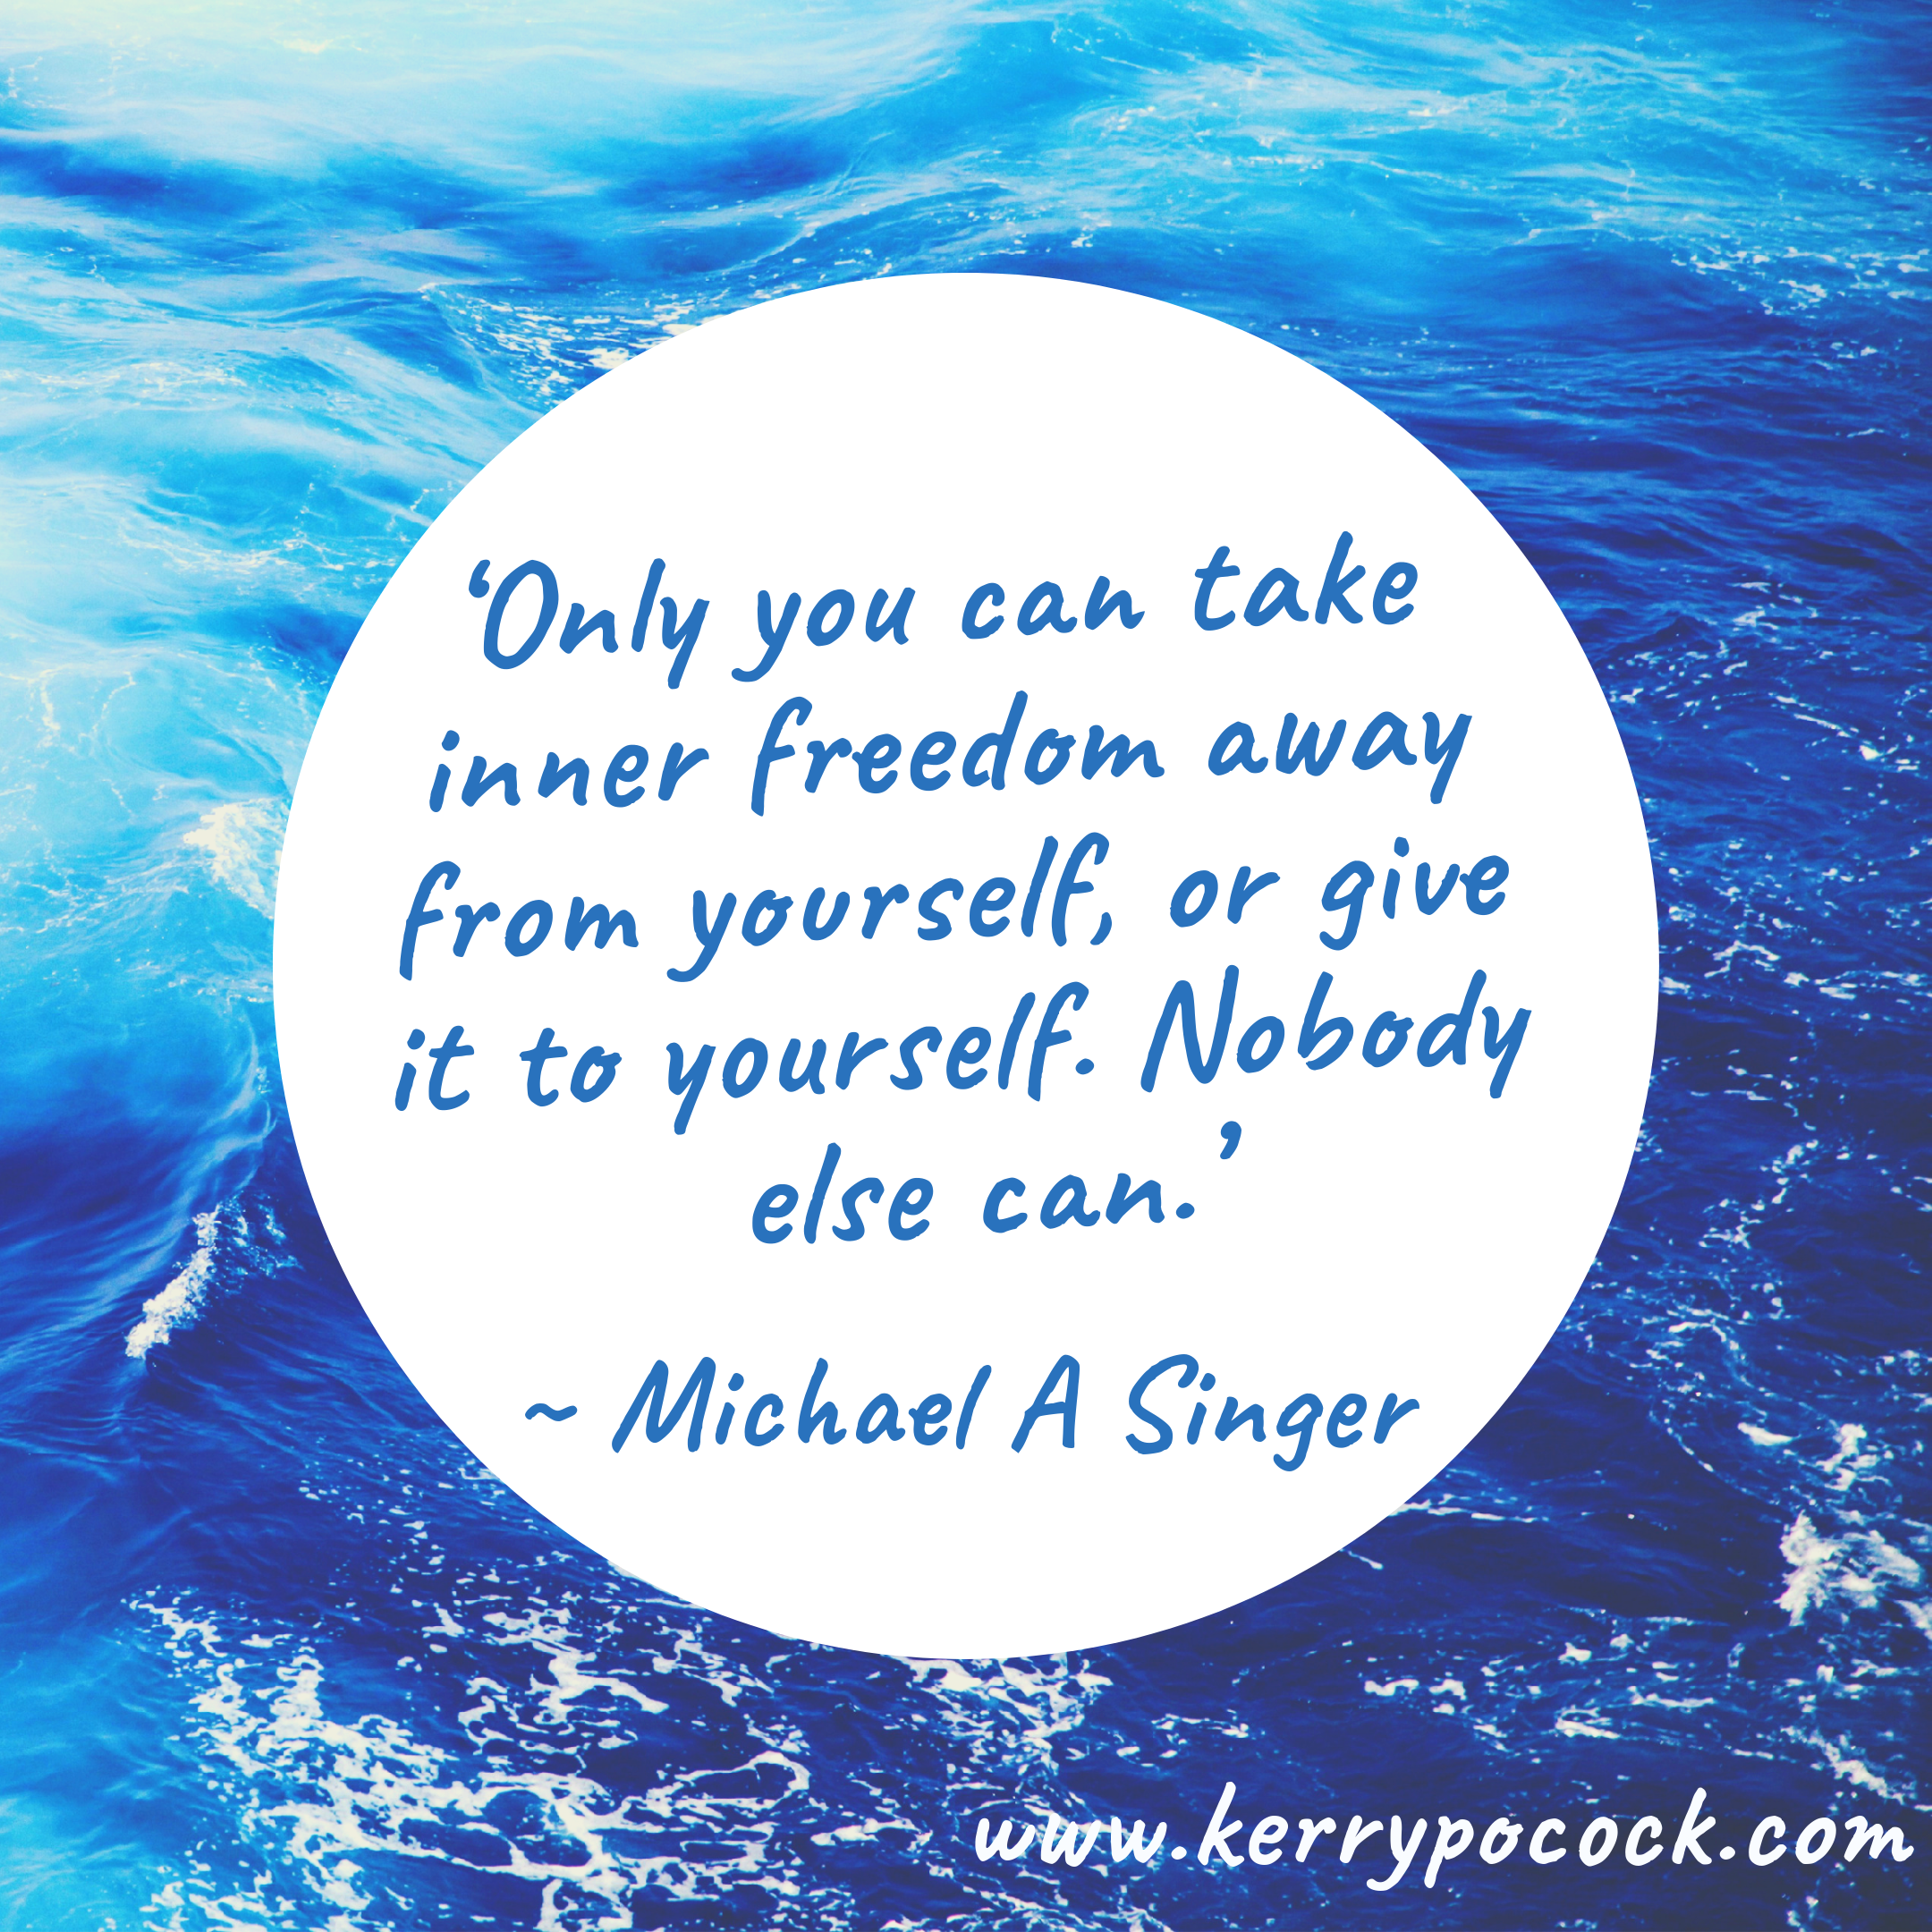 Michael A Singer quote 'you can only take inner freedom away from yourself...'